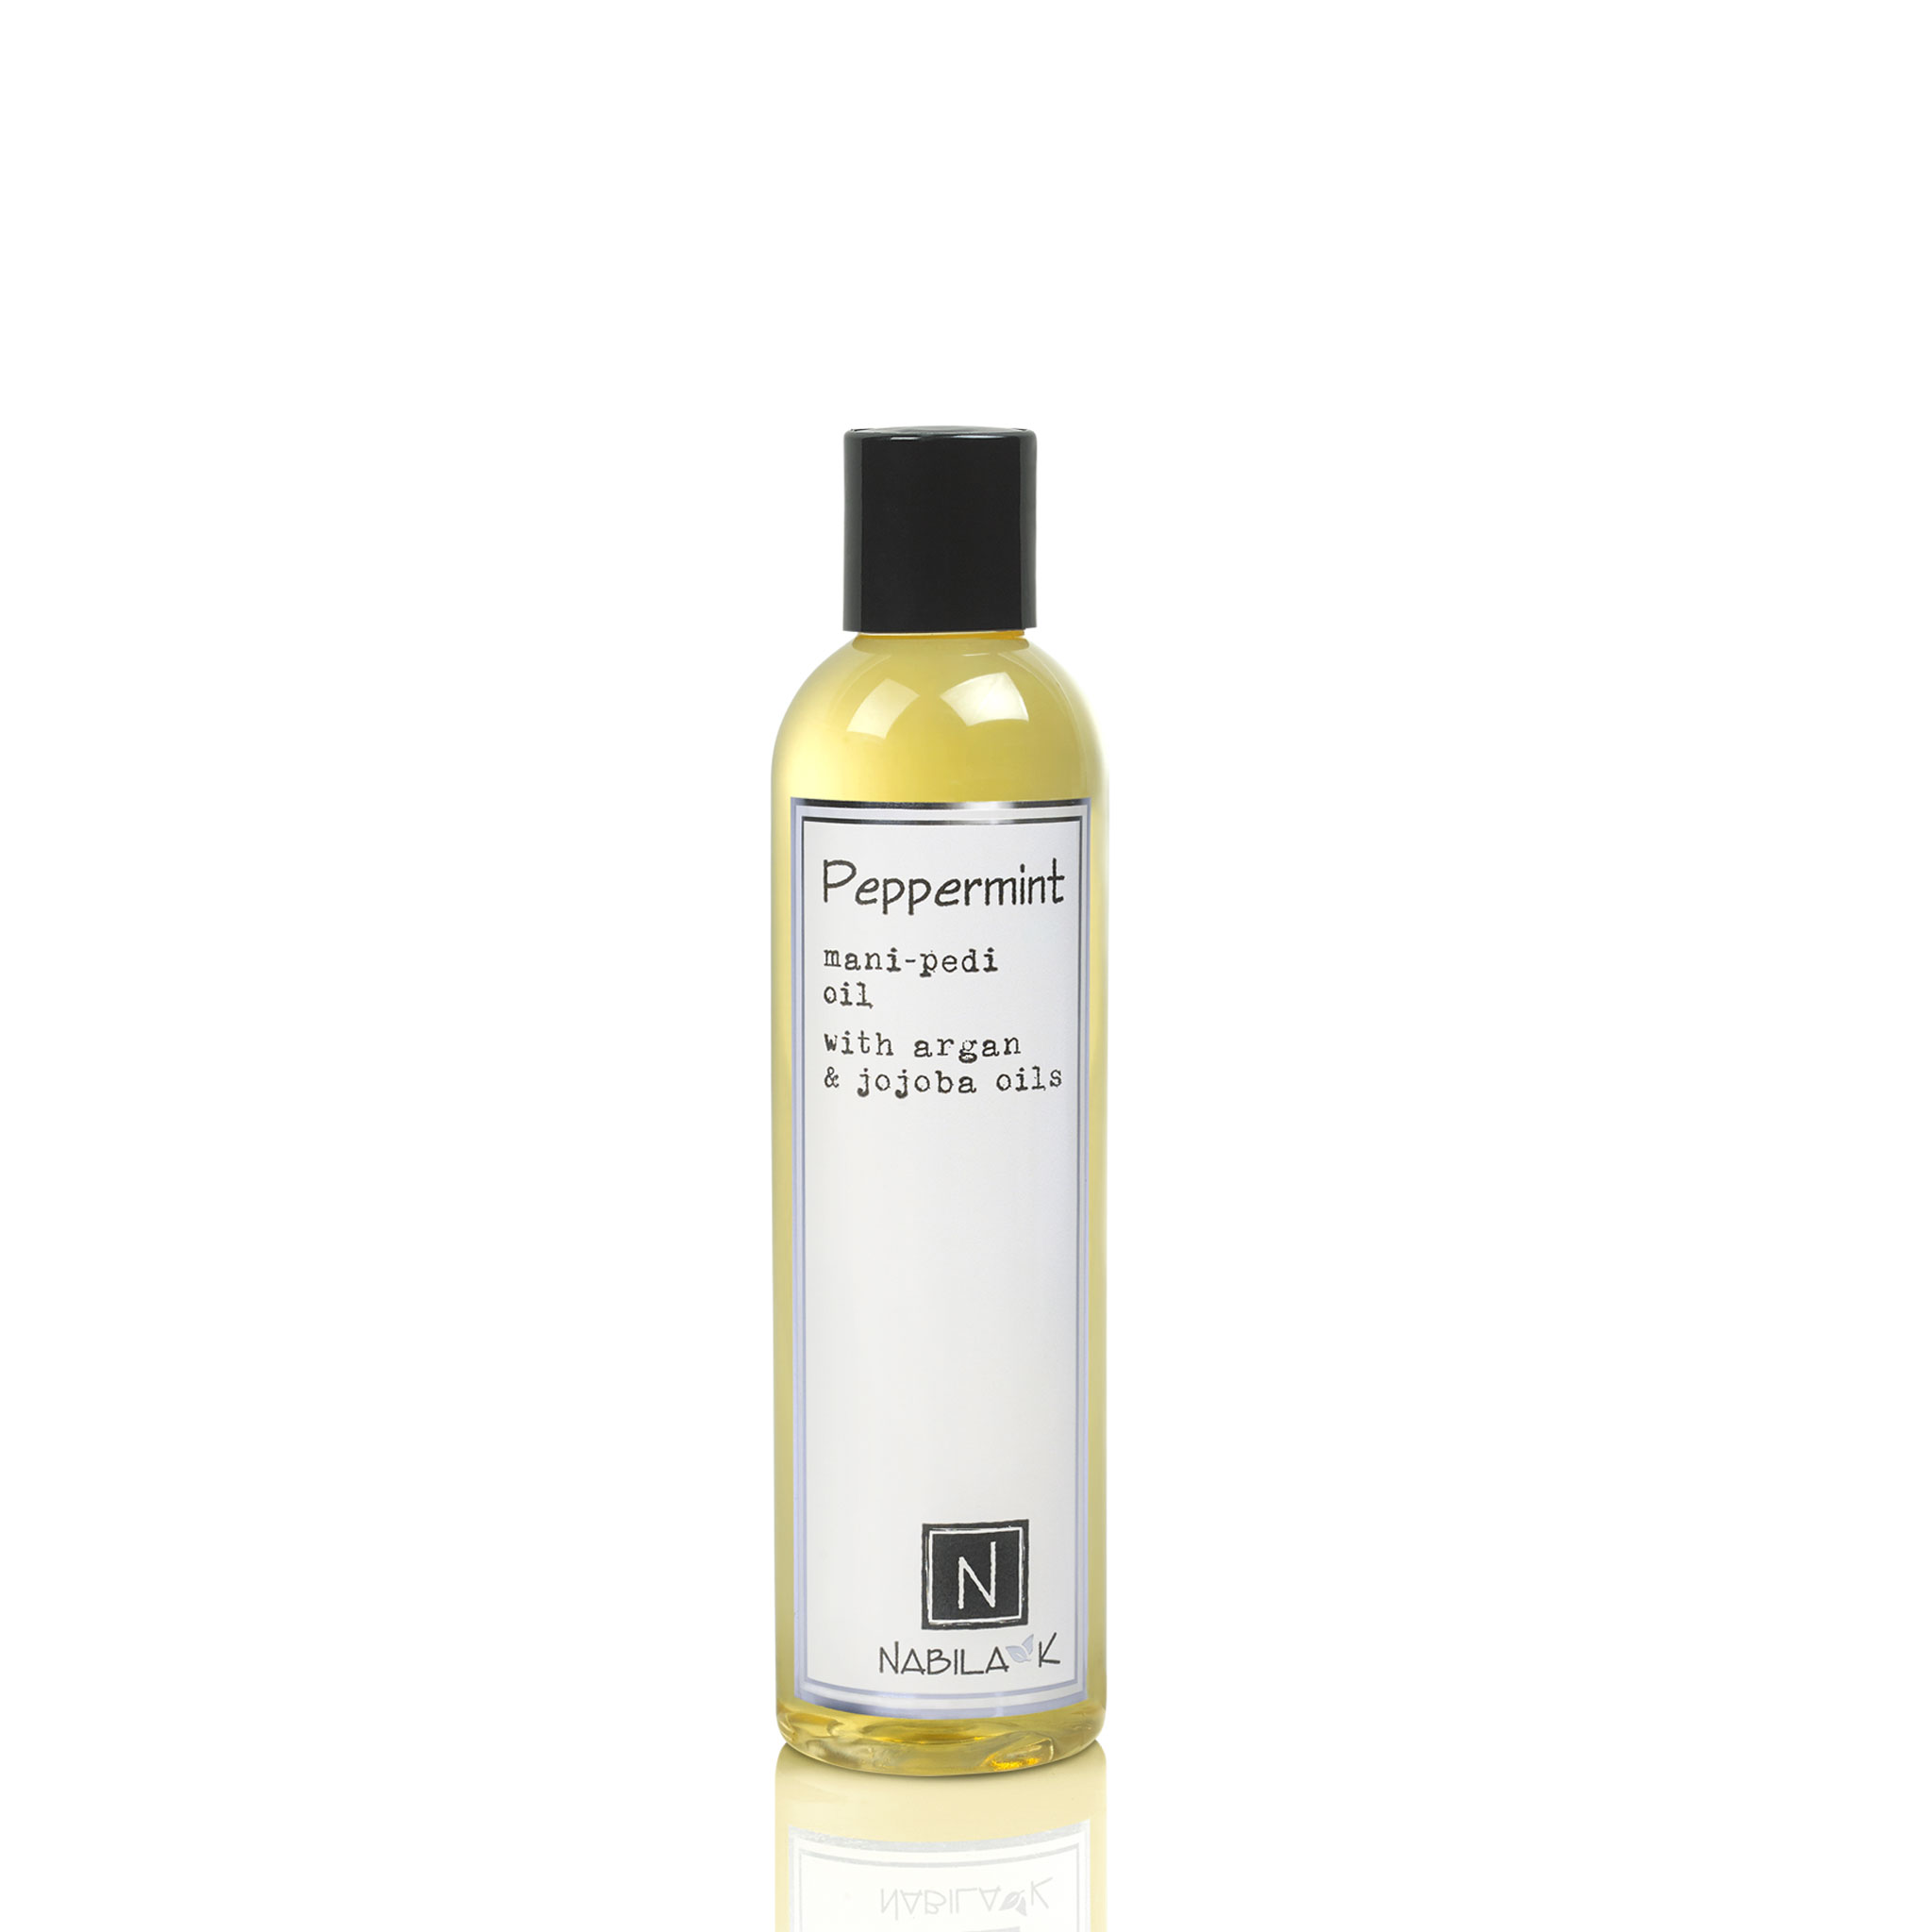 1 Large Size Version of Peppermint Mani-Pedi Oil with Argan and Jojoba Oils